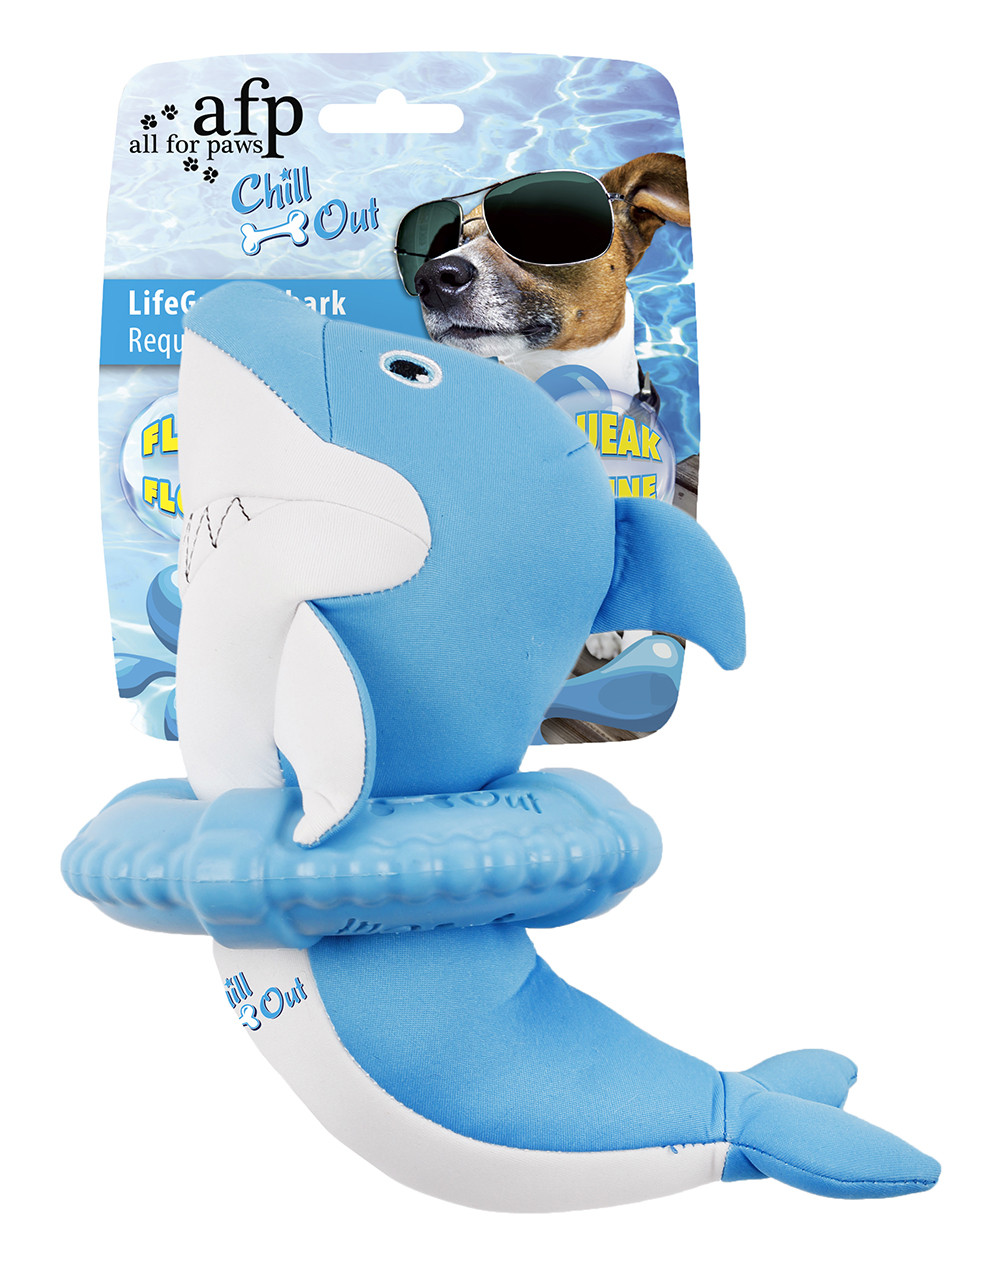 All for Paws Chill Out LifeGuard Shark